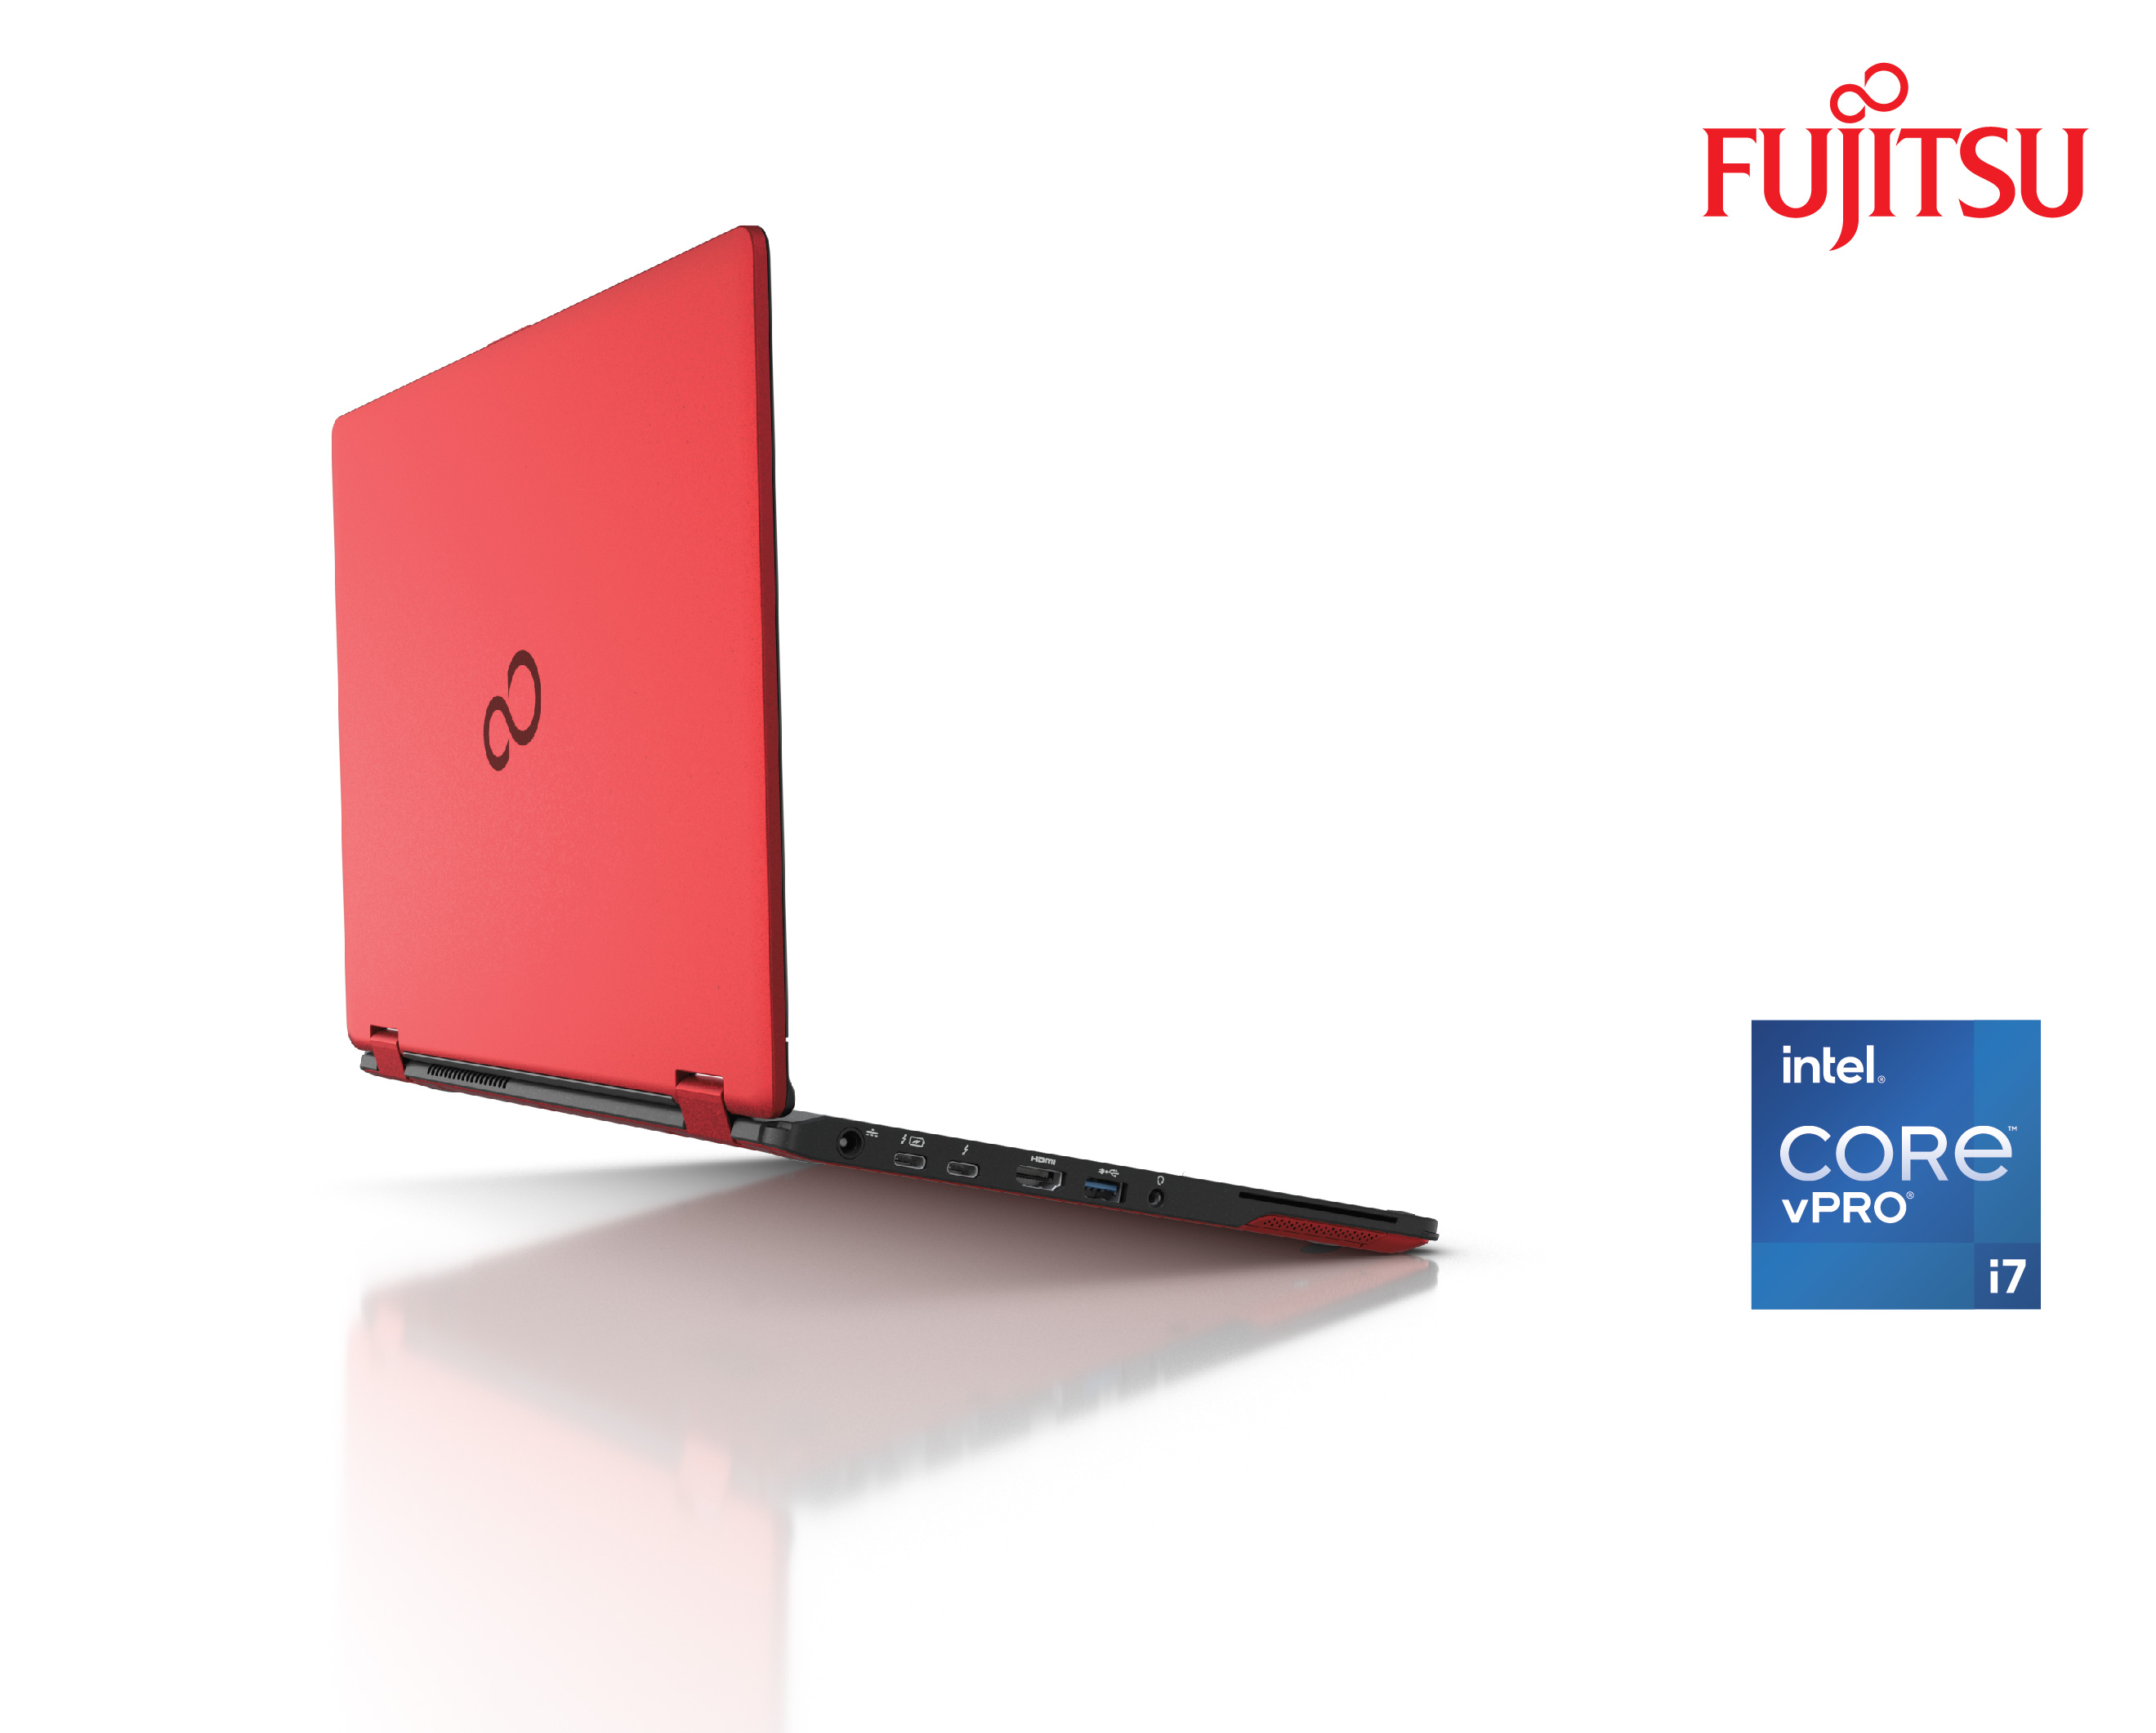 New Fujitsu LIFEBOOK takes New Workstyle Productivity to the Next Level